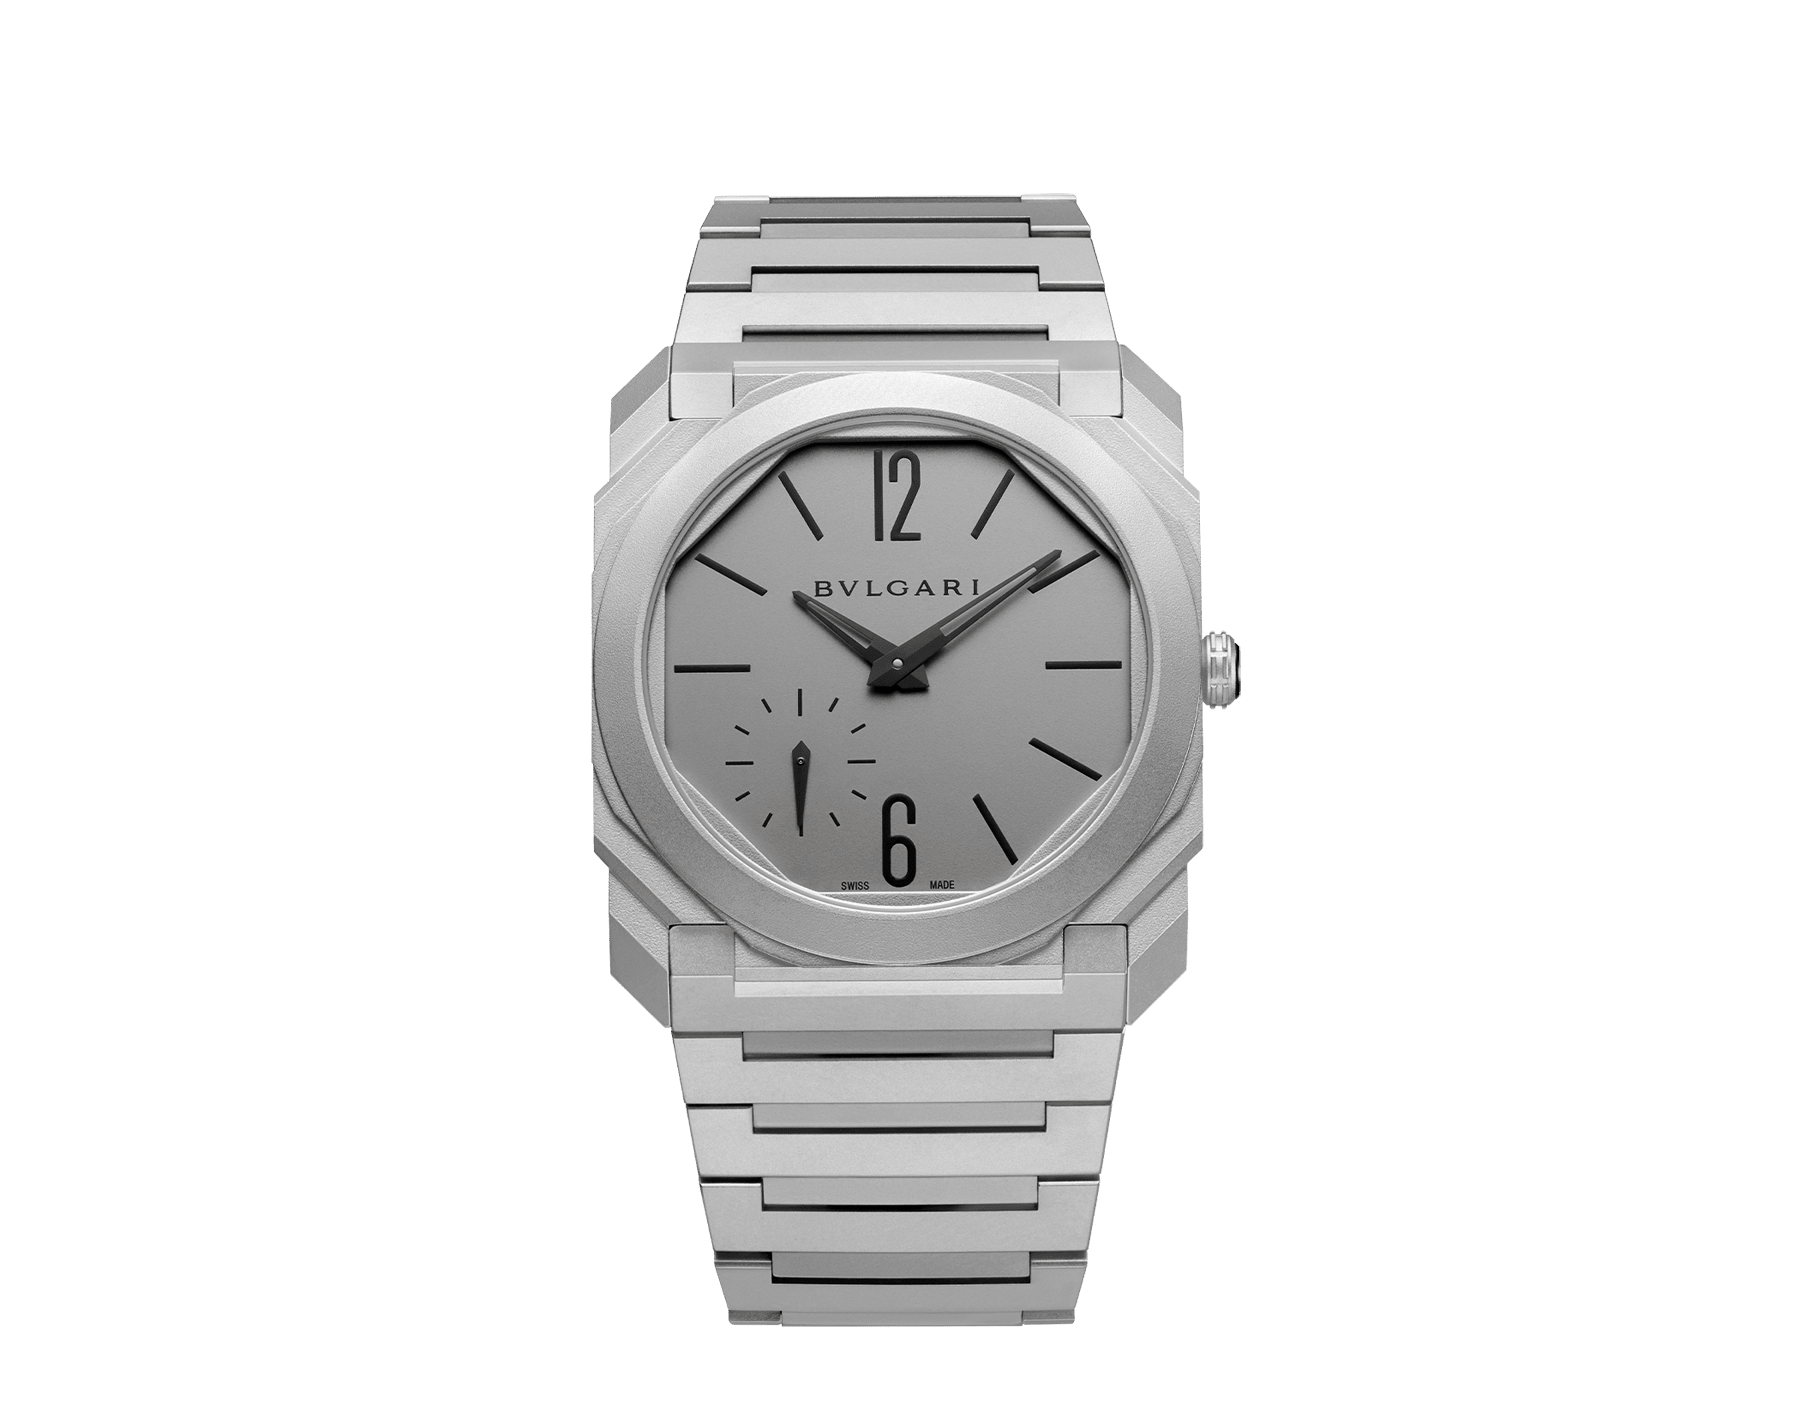 Octo Finissimo Automatic watch in titanium case and bracelet with extra thin mechanical manufacture movement, automatic winding, small seconds and titanium dial. 102713 image 1